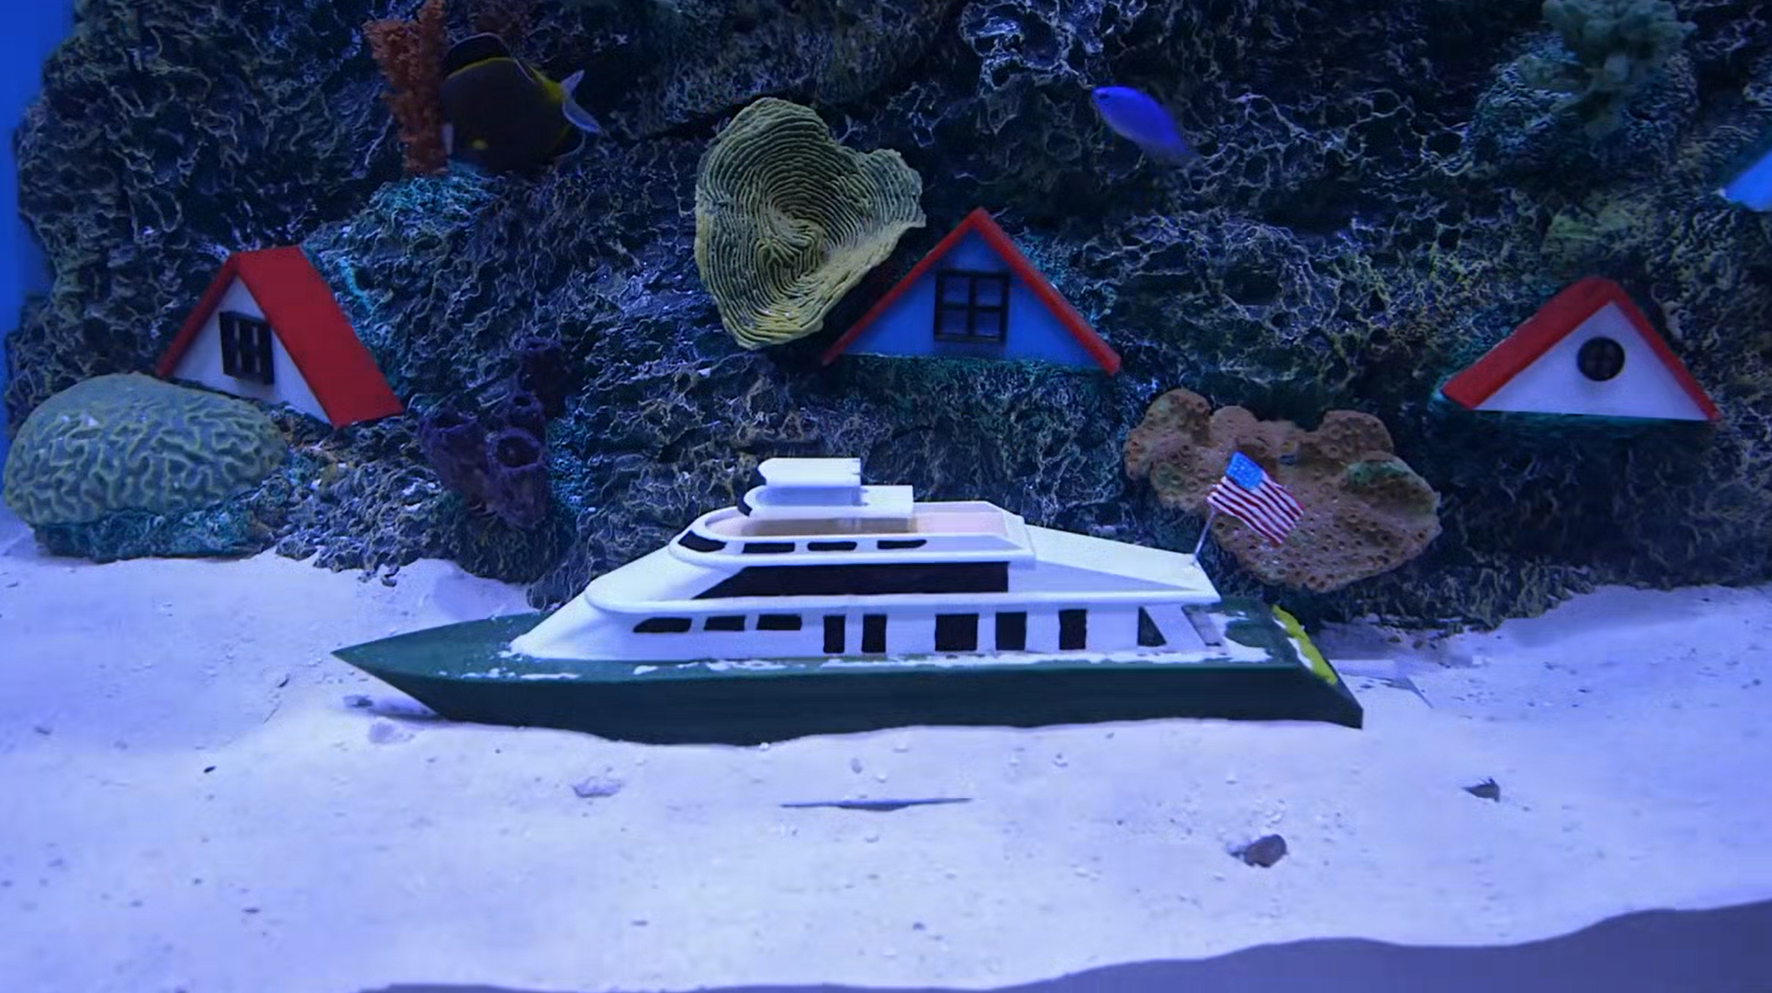 3D printed yacht in an aquarium created using a large format 3D printer. Image via Animal Planet.